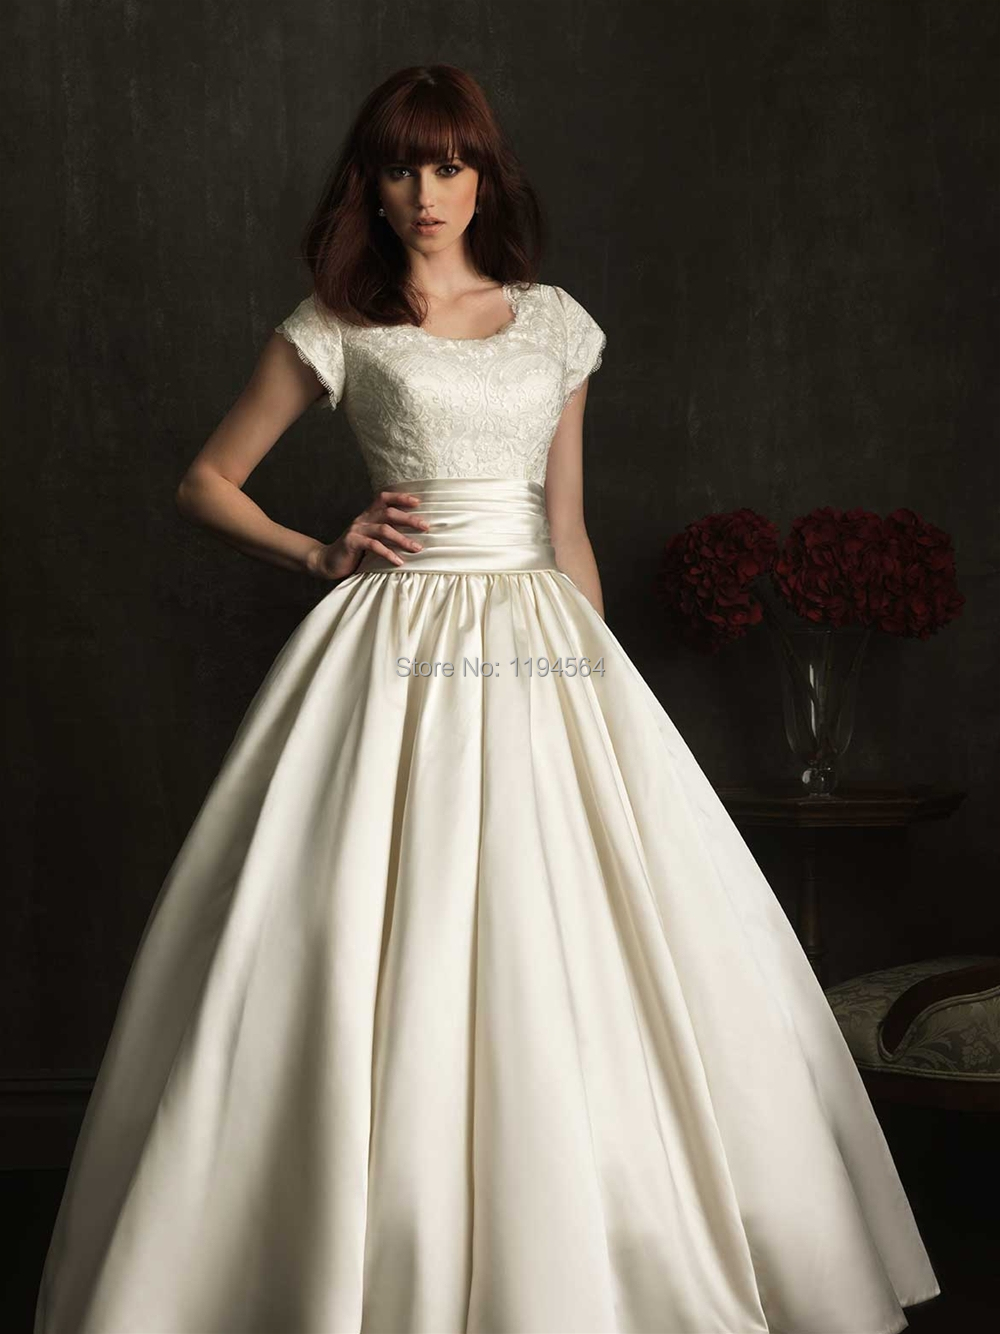 Modest high back wedding dresses 2015 bridal ball gowns for Modest a line wedding dresses